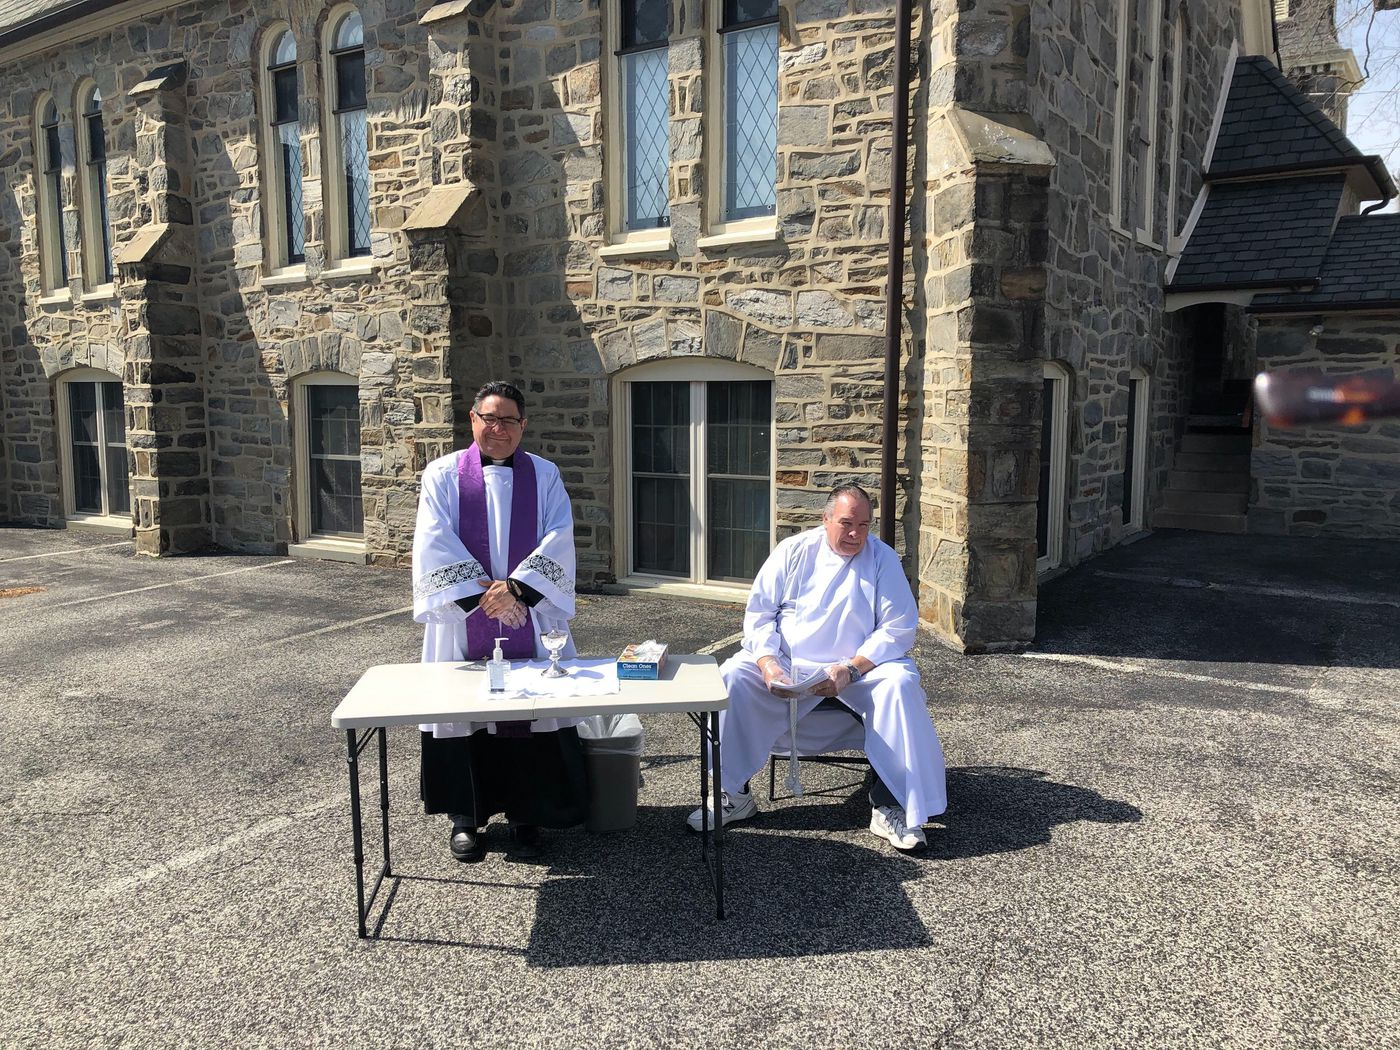 Rev. Ernie Galaz (left) of the Christ Episcopal Church in Media set up a drive-by and walk-by communion station.